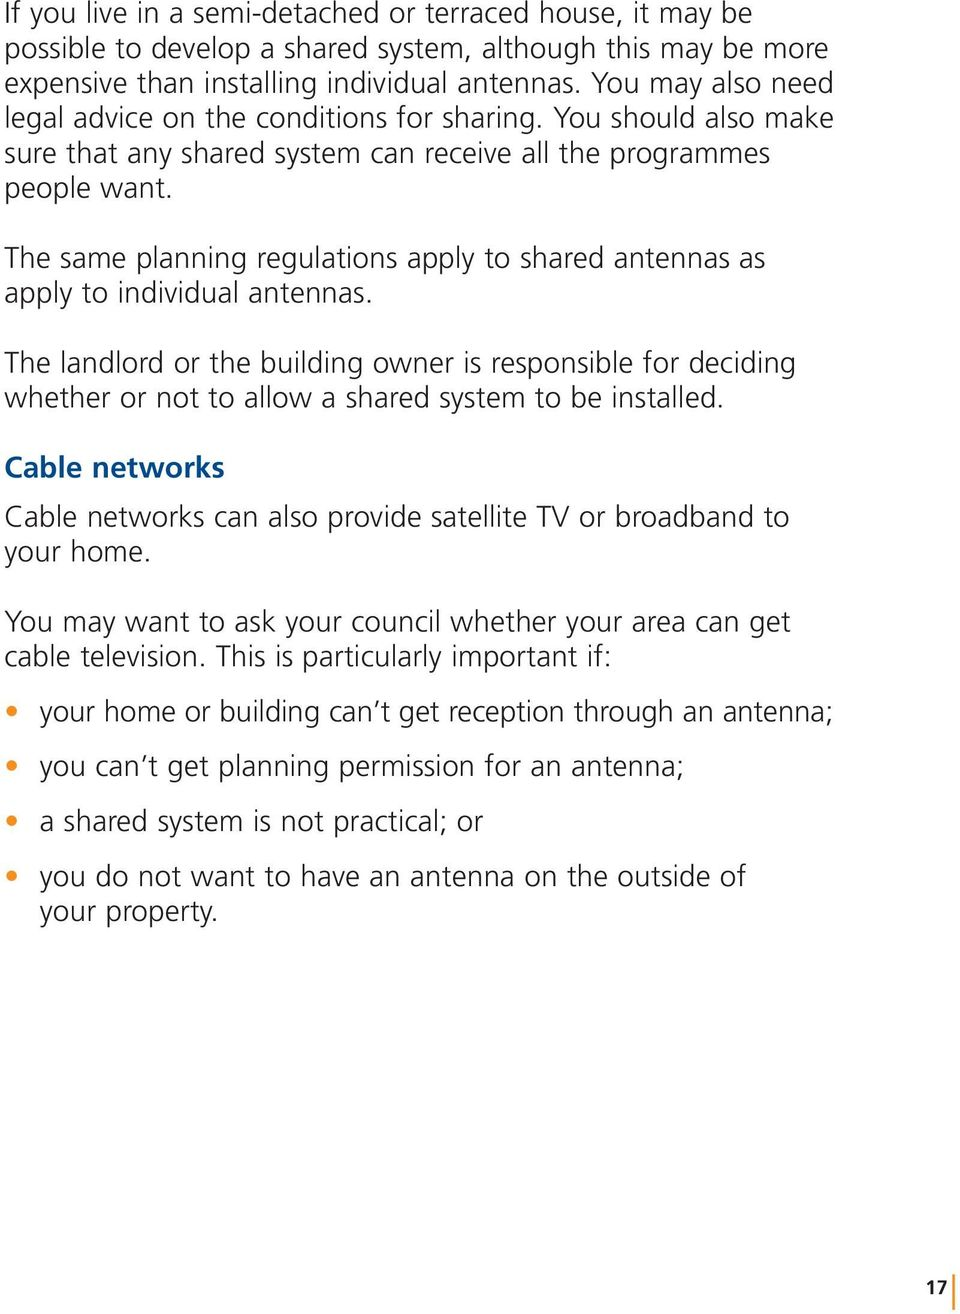 The same planning regulations apply to shared antennas as apply to individual antennas.